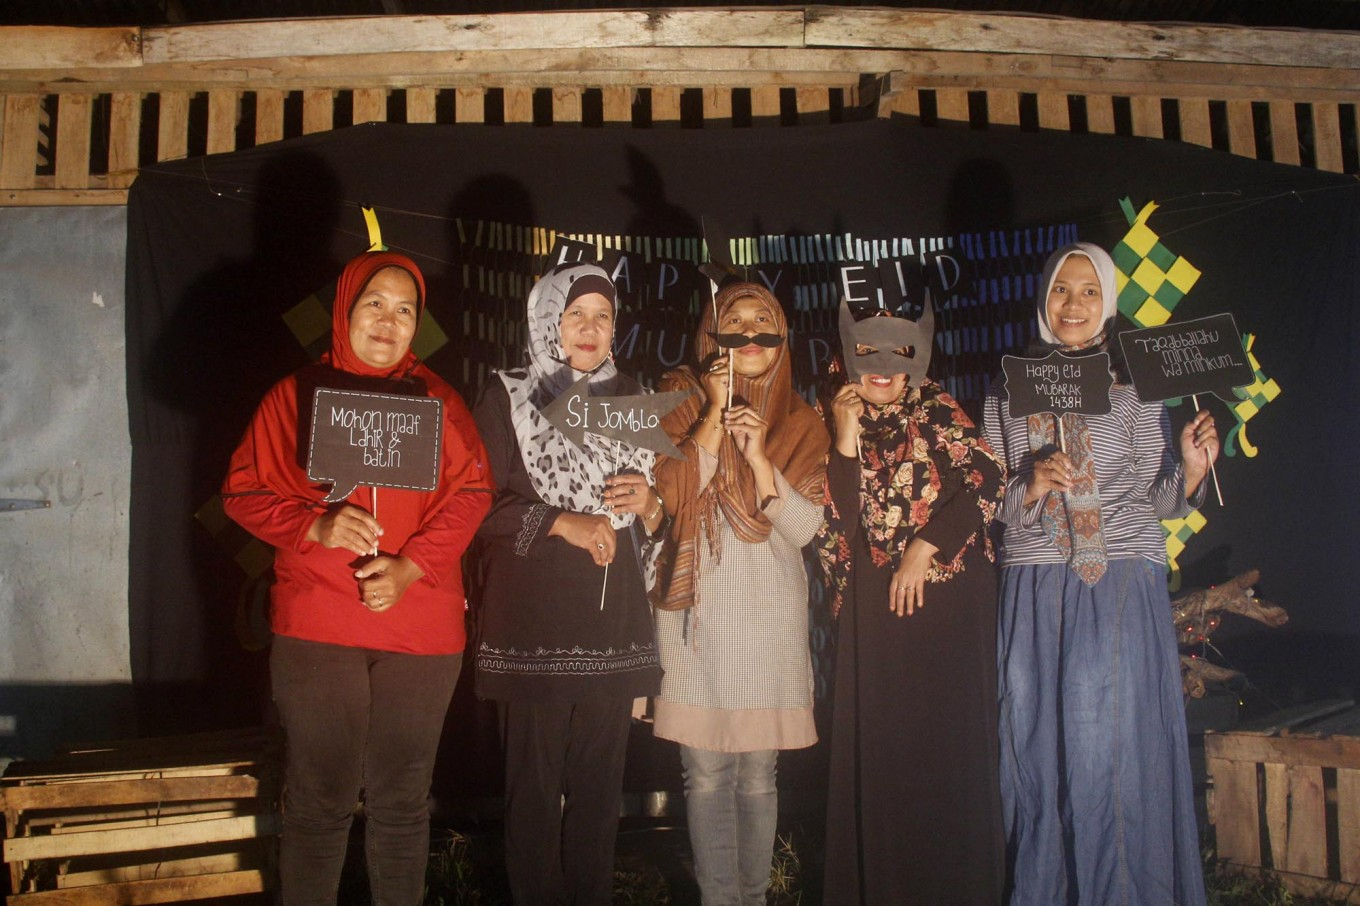 Five women are photographed in a booth built by mosque youths in Payaman Secang, Magelang, Central Java, on Saturday night, June 24, 2017. The eve's festivities included fireworks and a torch parade. JP/Syamsul Huda M.Suhari